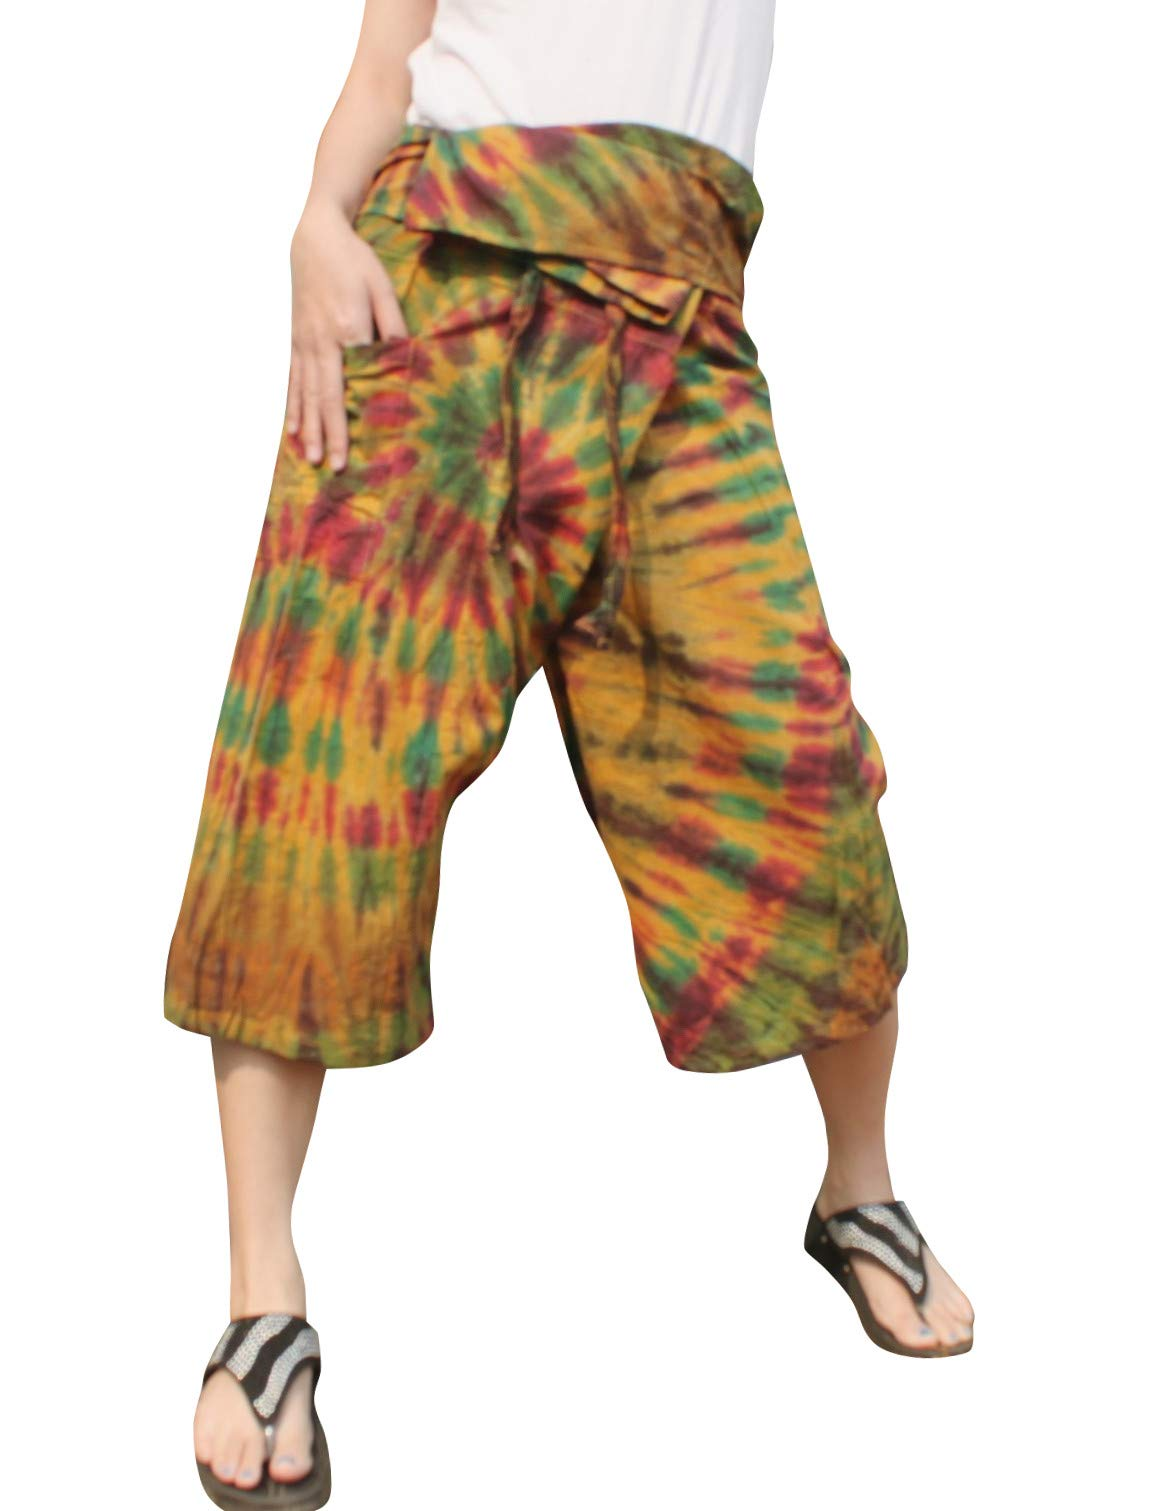 Full Funk Cotton Tie Dyed Natural Colorful Thai Fisherman Wrap 3/4 Leg Pants, Medium, Cocoa Brown by Full Funk